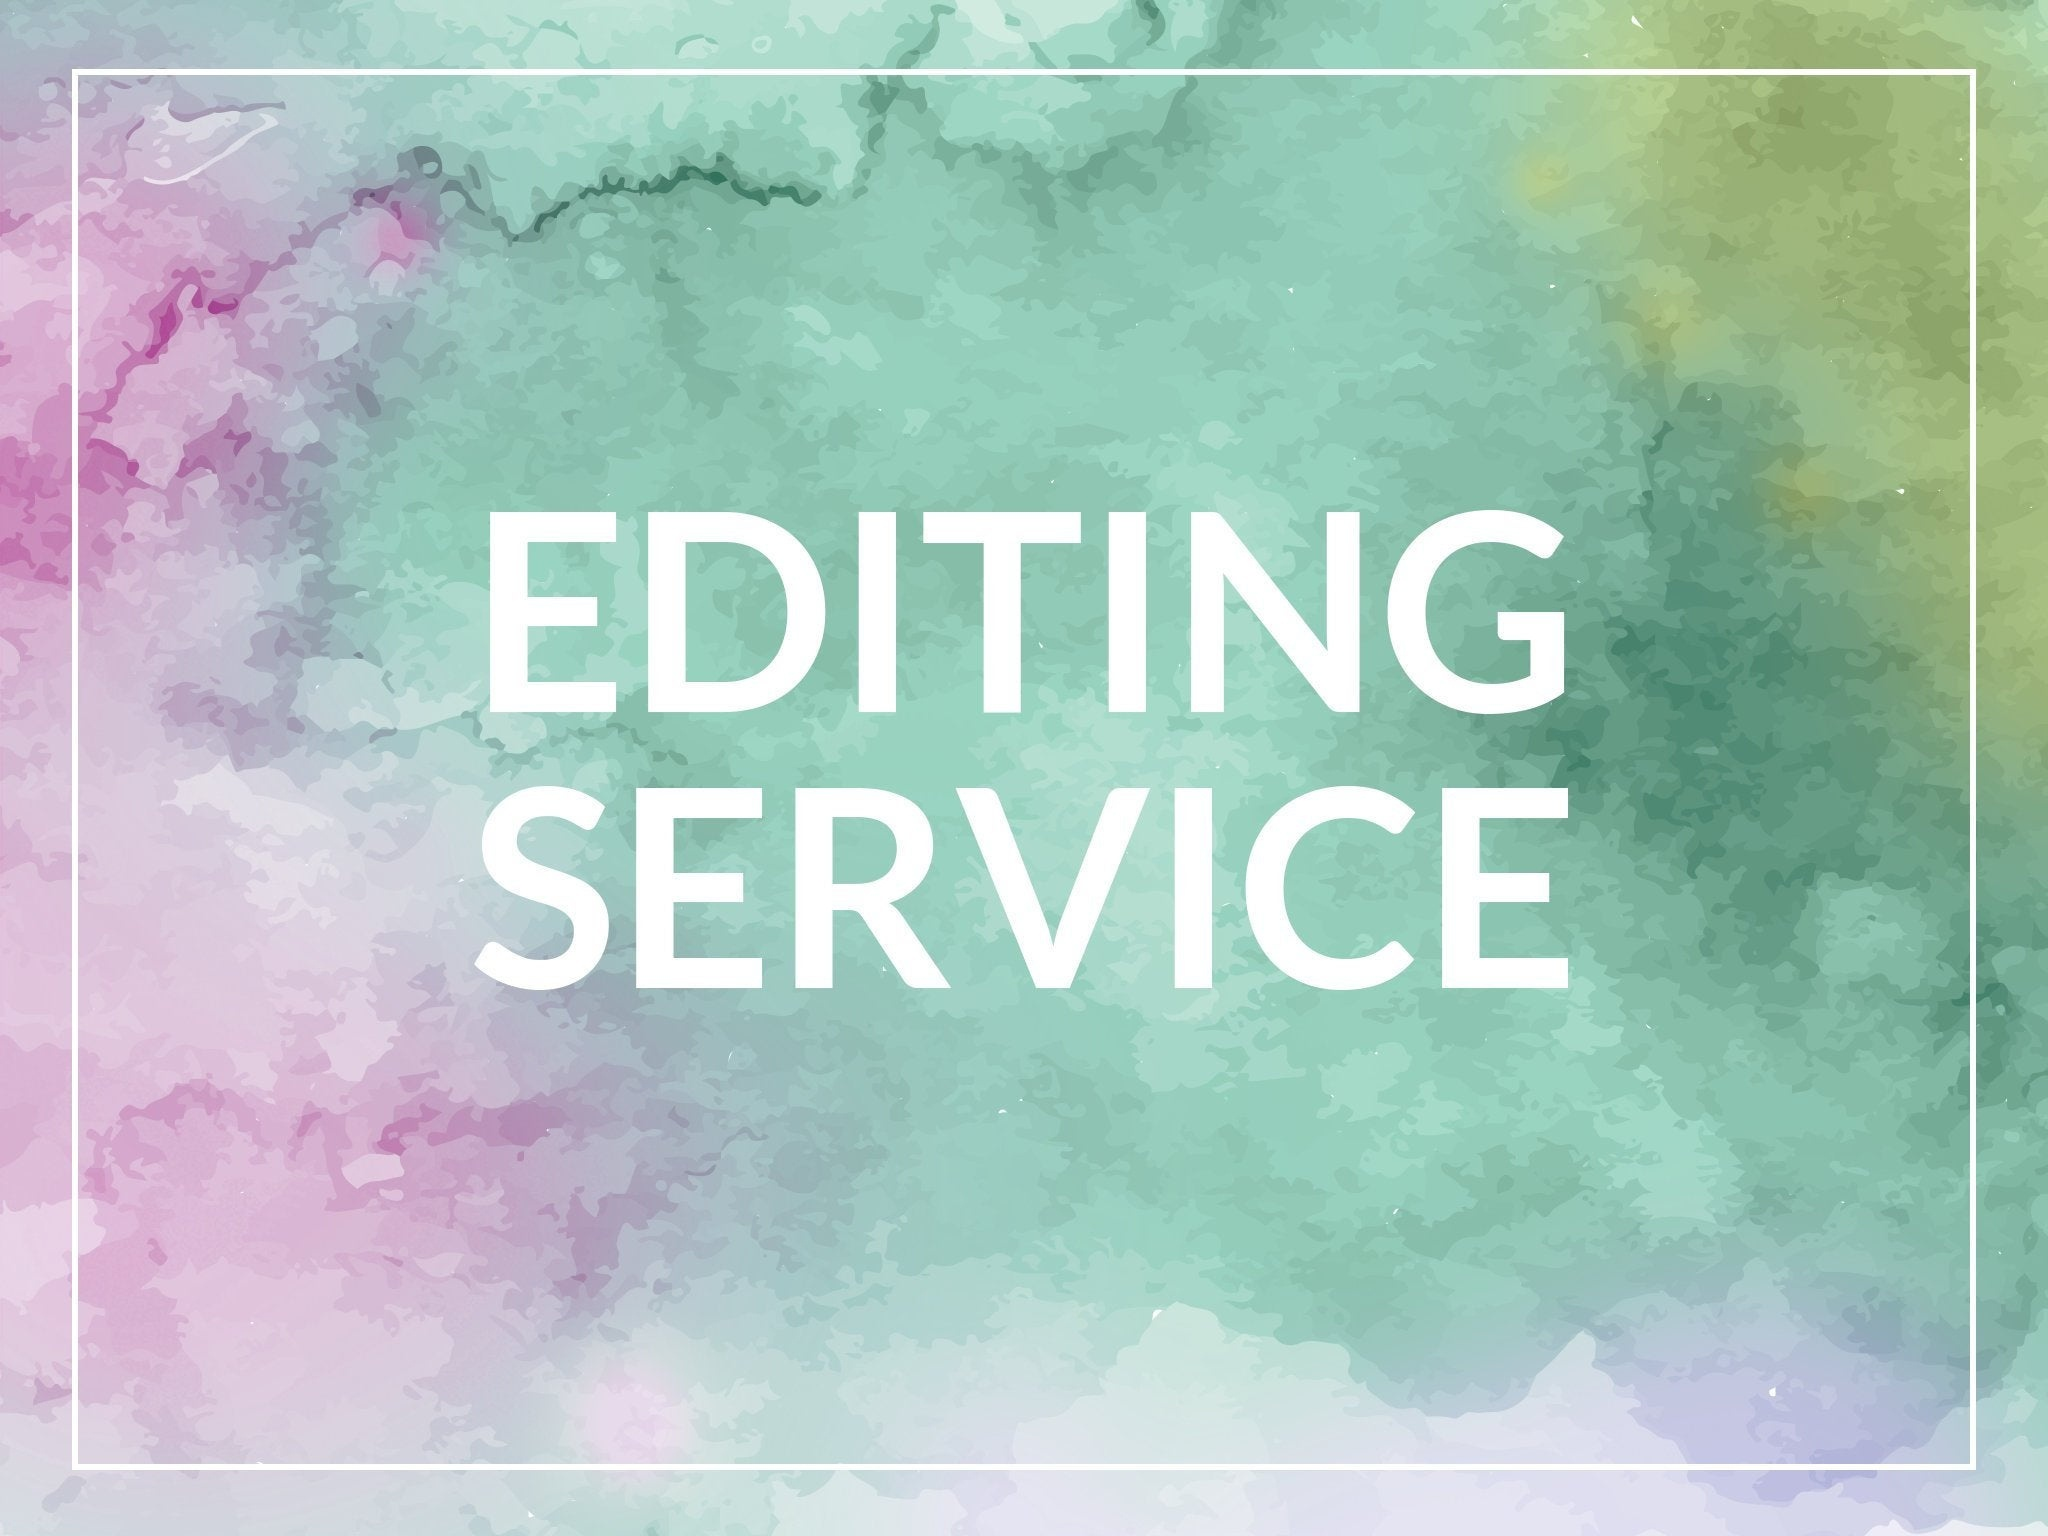 Template Editing Service Hassle Free Printable Templates | Etsy - Free Printable Out Of Service Sign